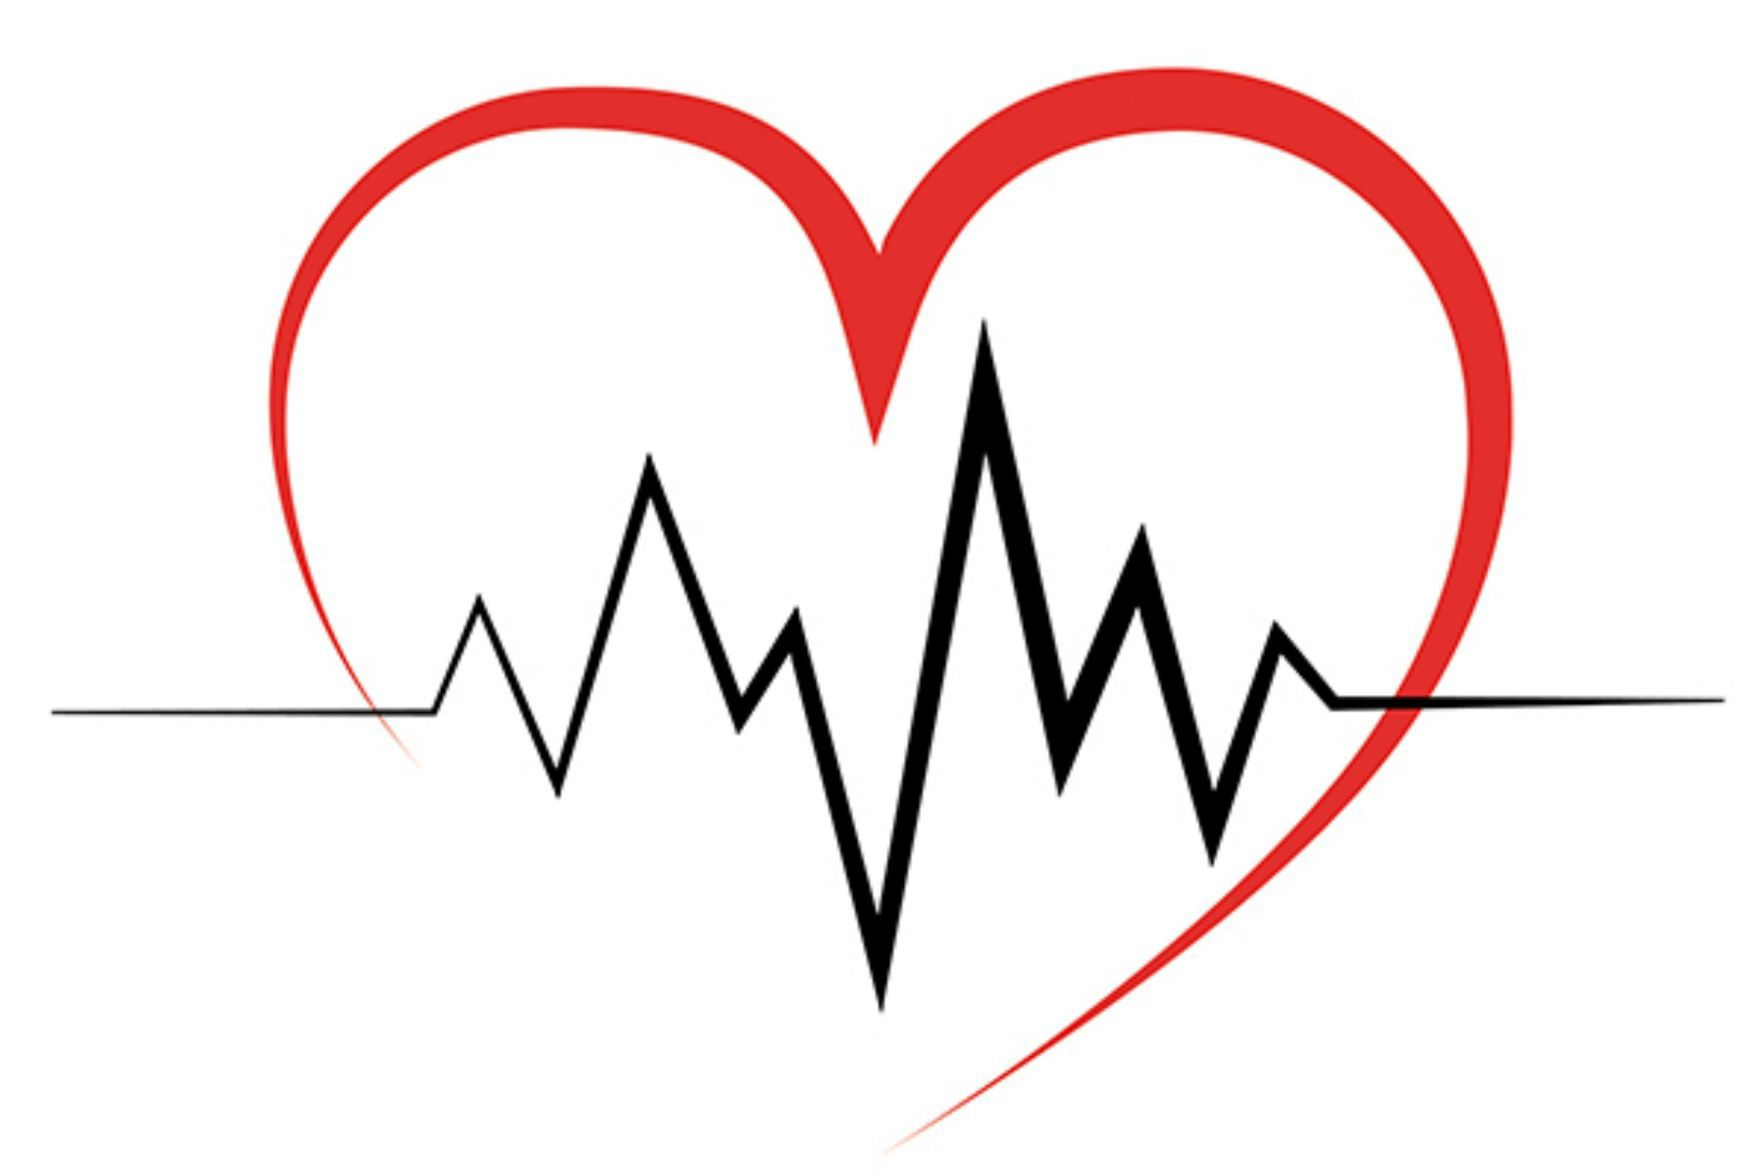 Heart Surgery Ratings Confuse Rather Than Clarify Health Unionleader Com